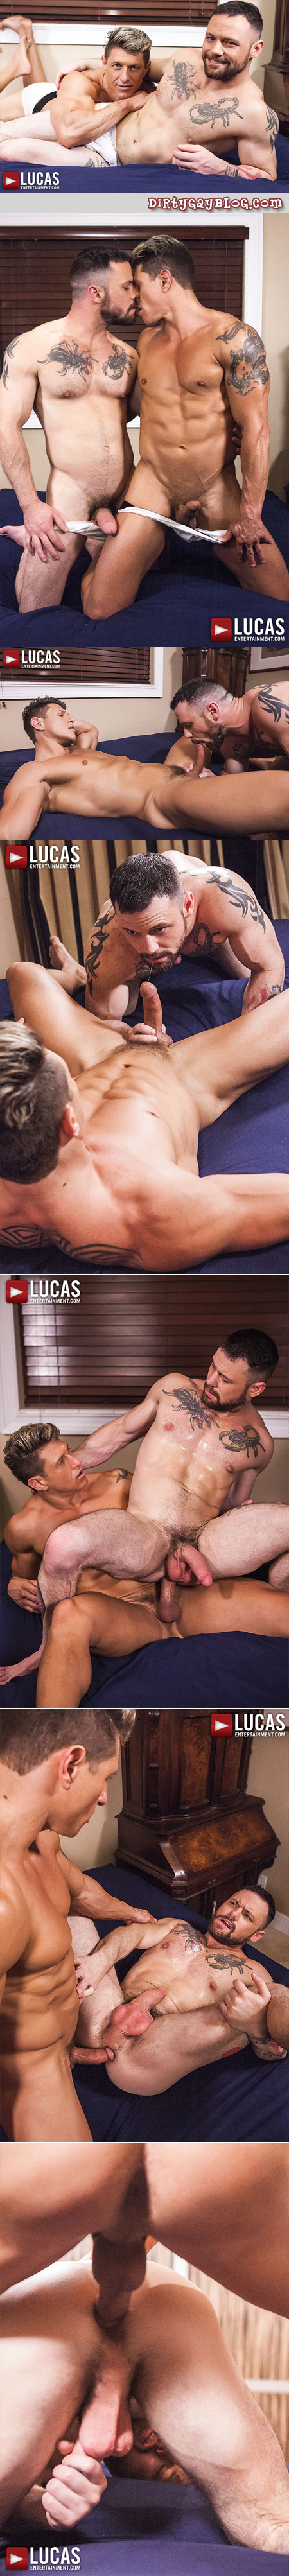 Tattooed muscle men in underwear flip-fuck bareback.